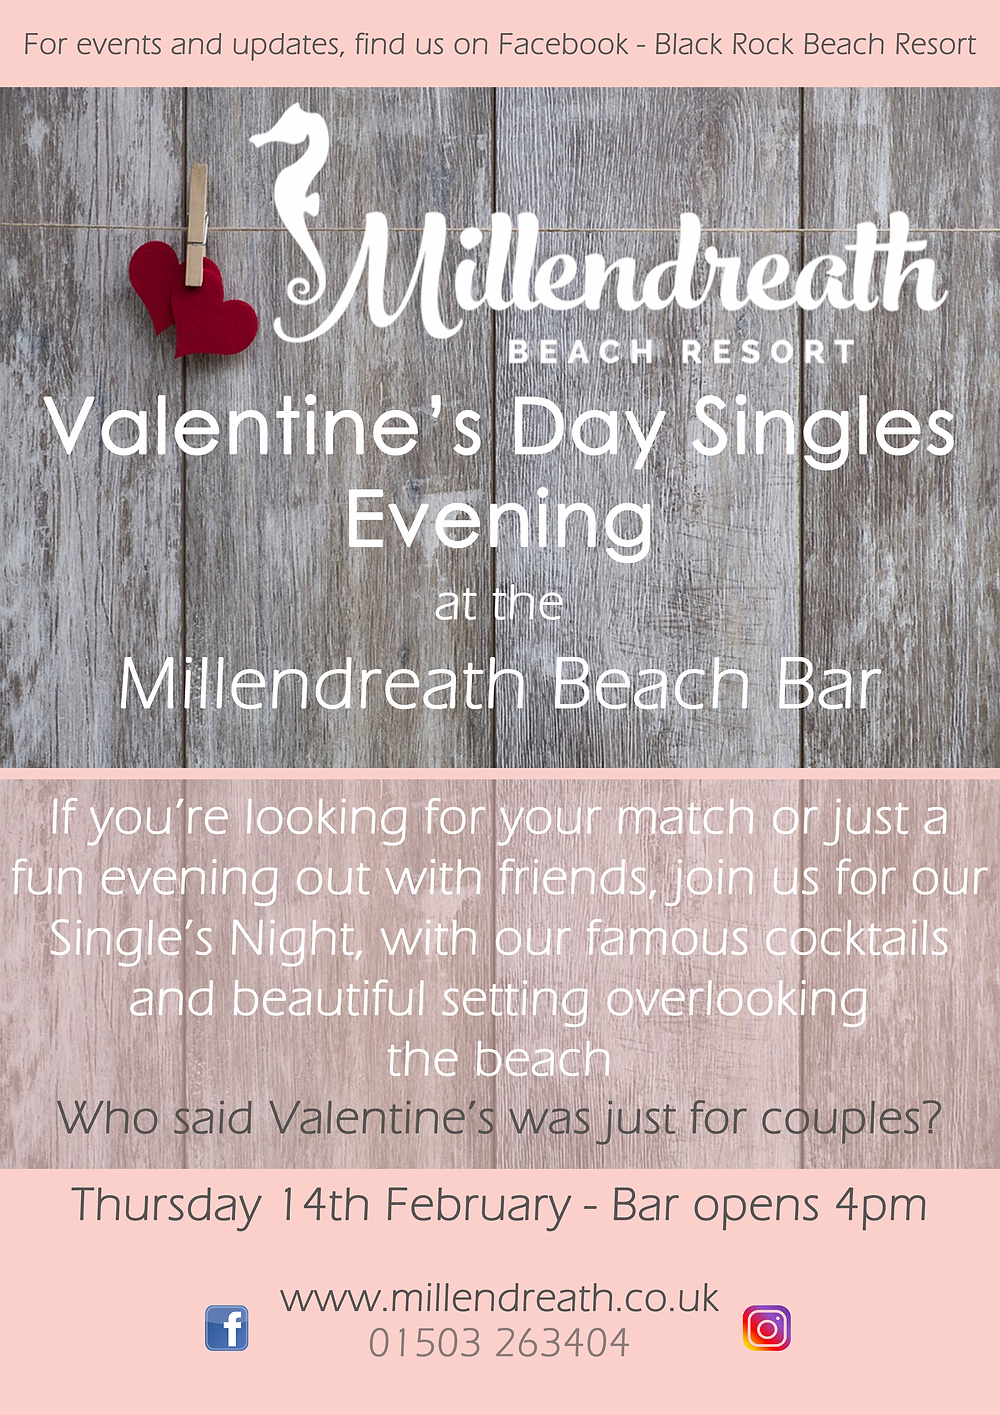 #valentinesday #february14th #valentine #millendreath #brbcornwall #blackrockbeachresort #millendreathbeach #blackrockcornwall #blackrock #looe #cornwall #placestoeatlooe #placestoeatcornwall #valentinesmenu #cornishproduce #food #drink #thingstodoincornwall #singlesnight #tapas